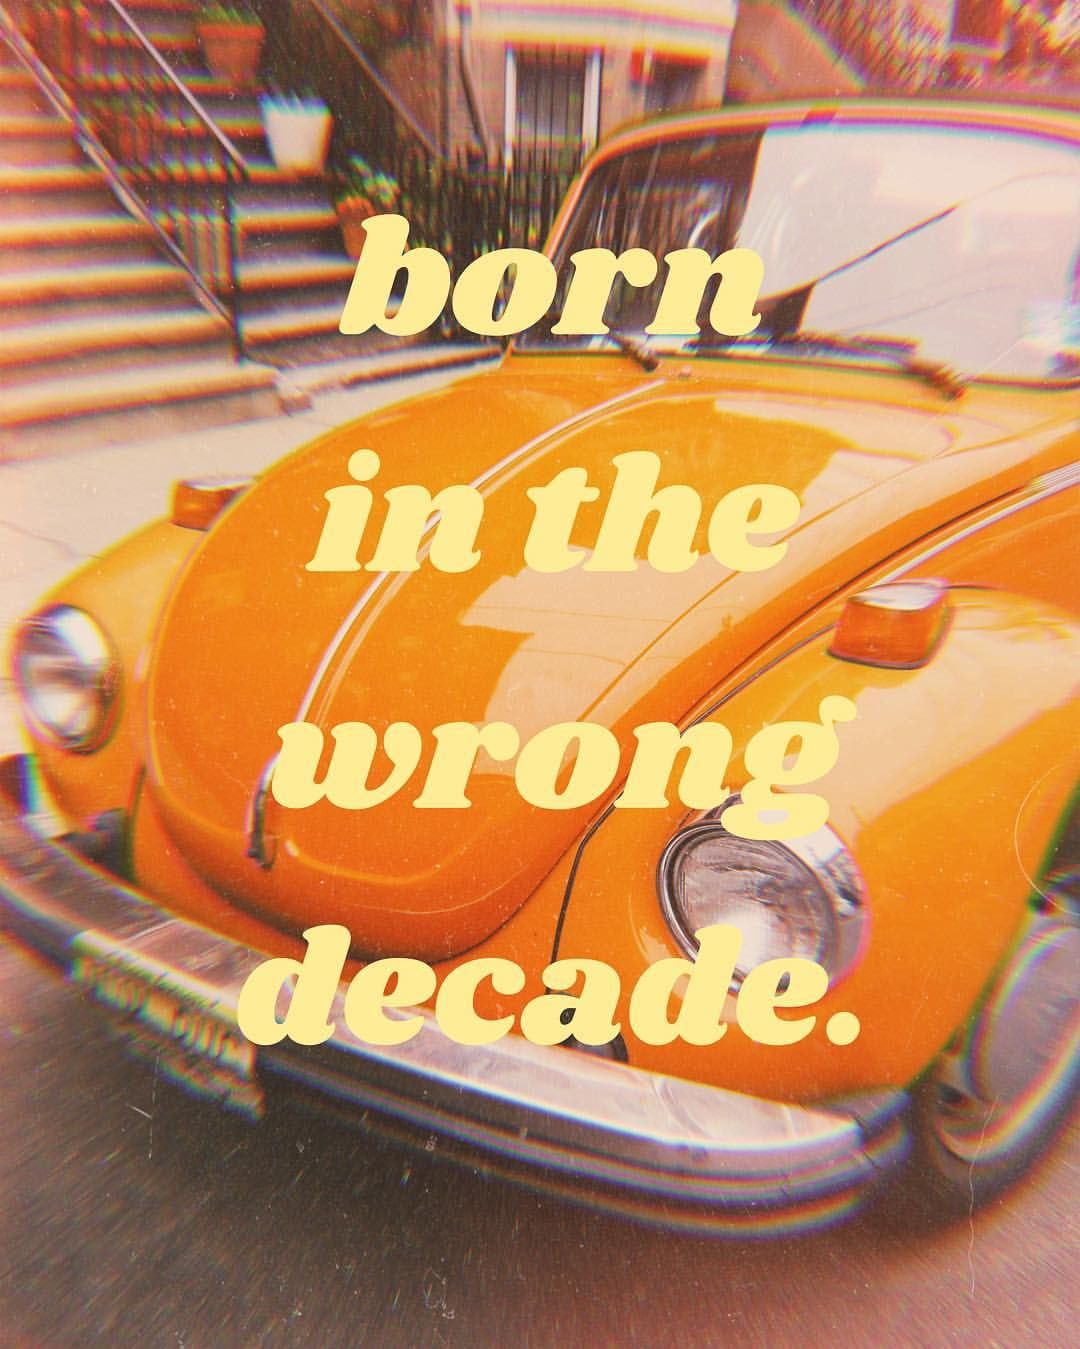 Born In The Wrong Decade Tumblr Quote Tumblr Aesthetic Aesthetic Photo Vintage Vibes Retro Vi Retro Wallpaper Wallpapers Vintage Aesthetic Wallpapers